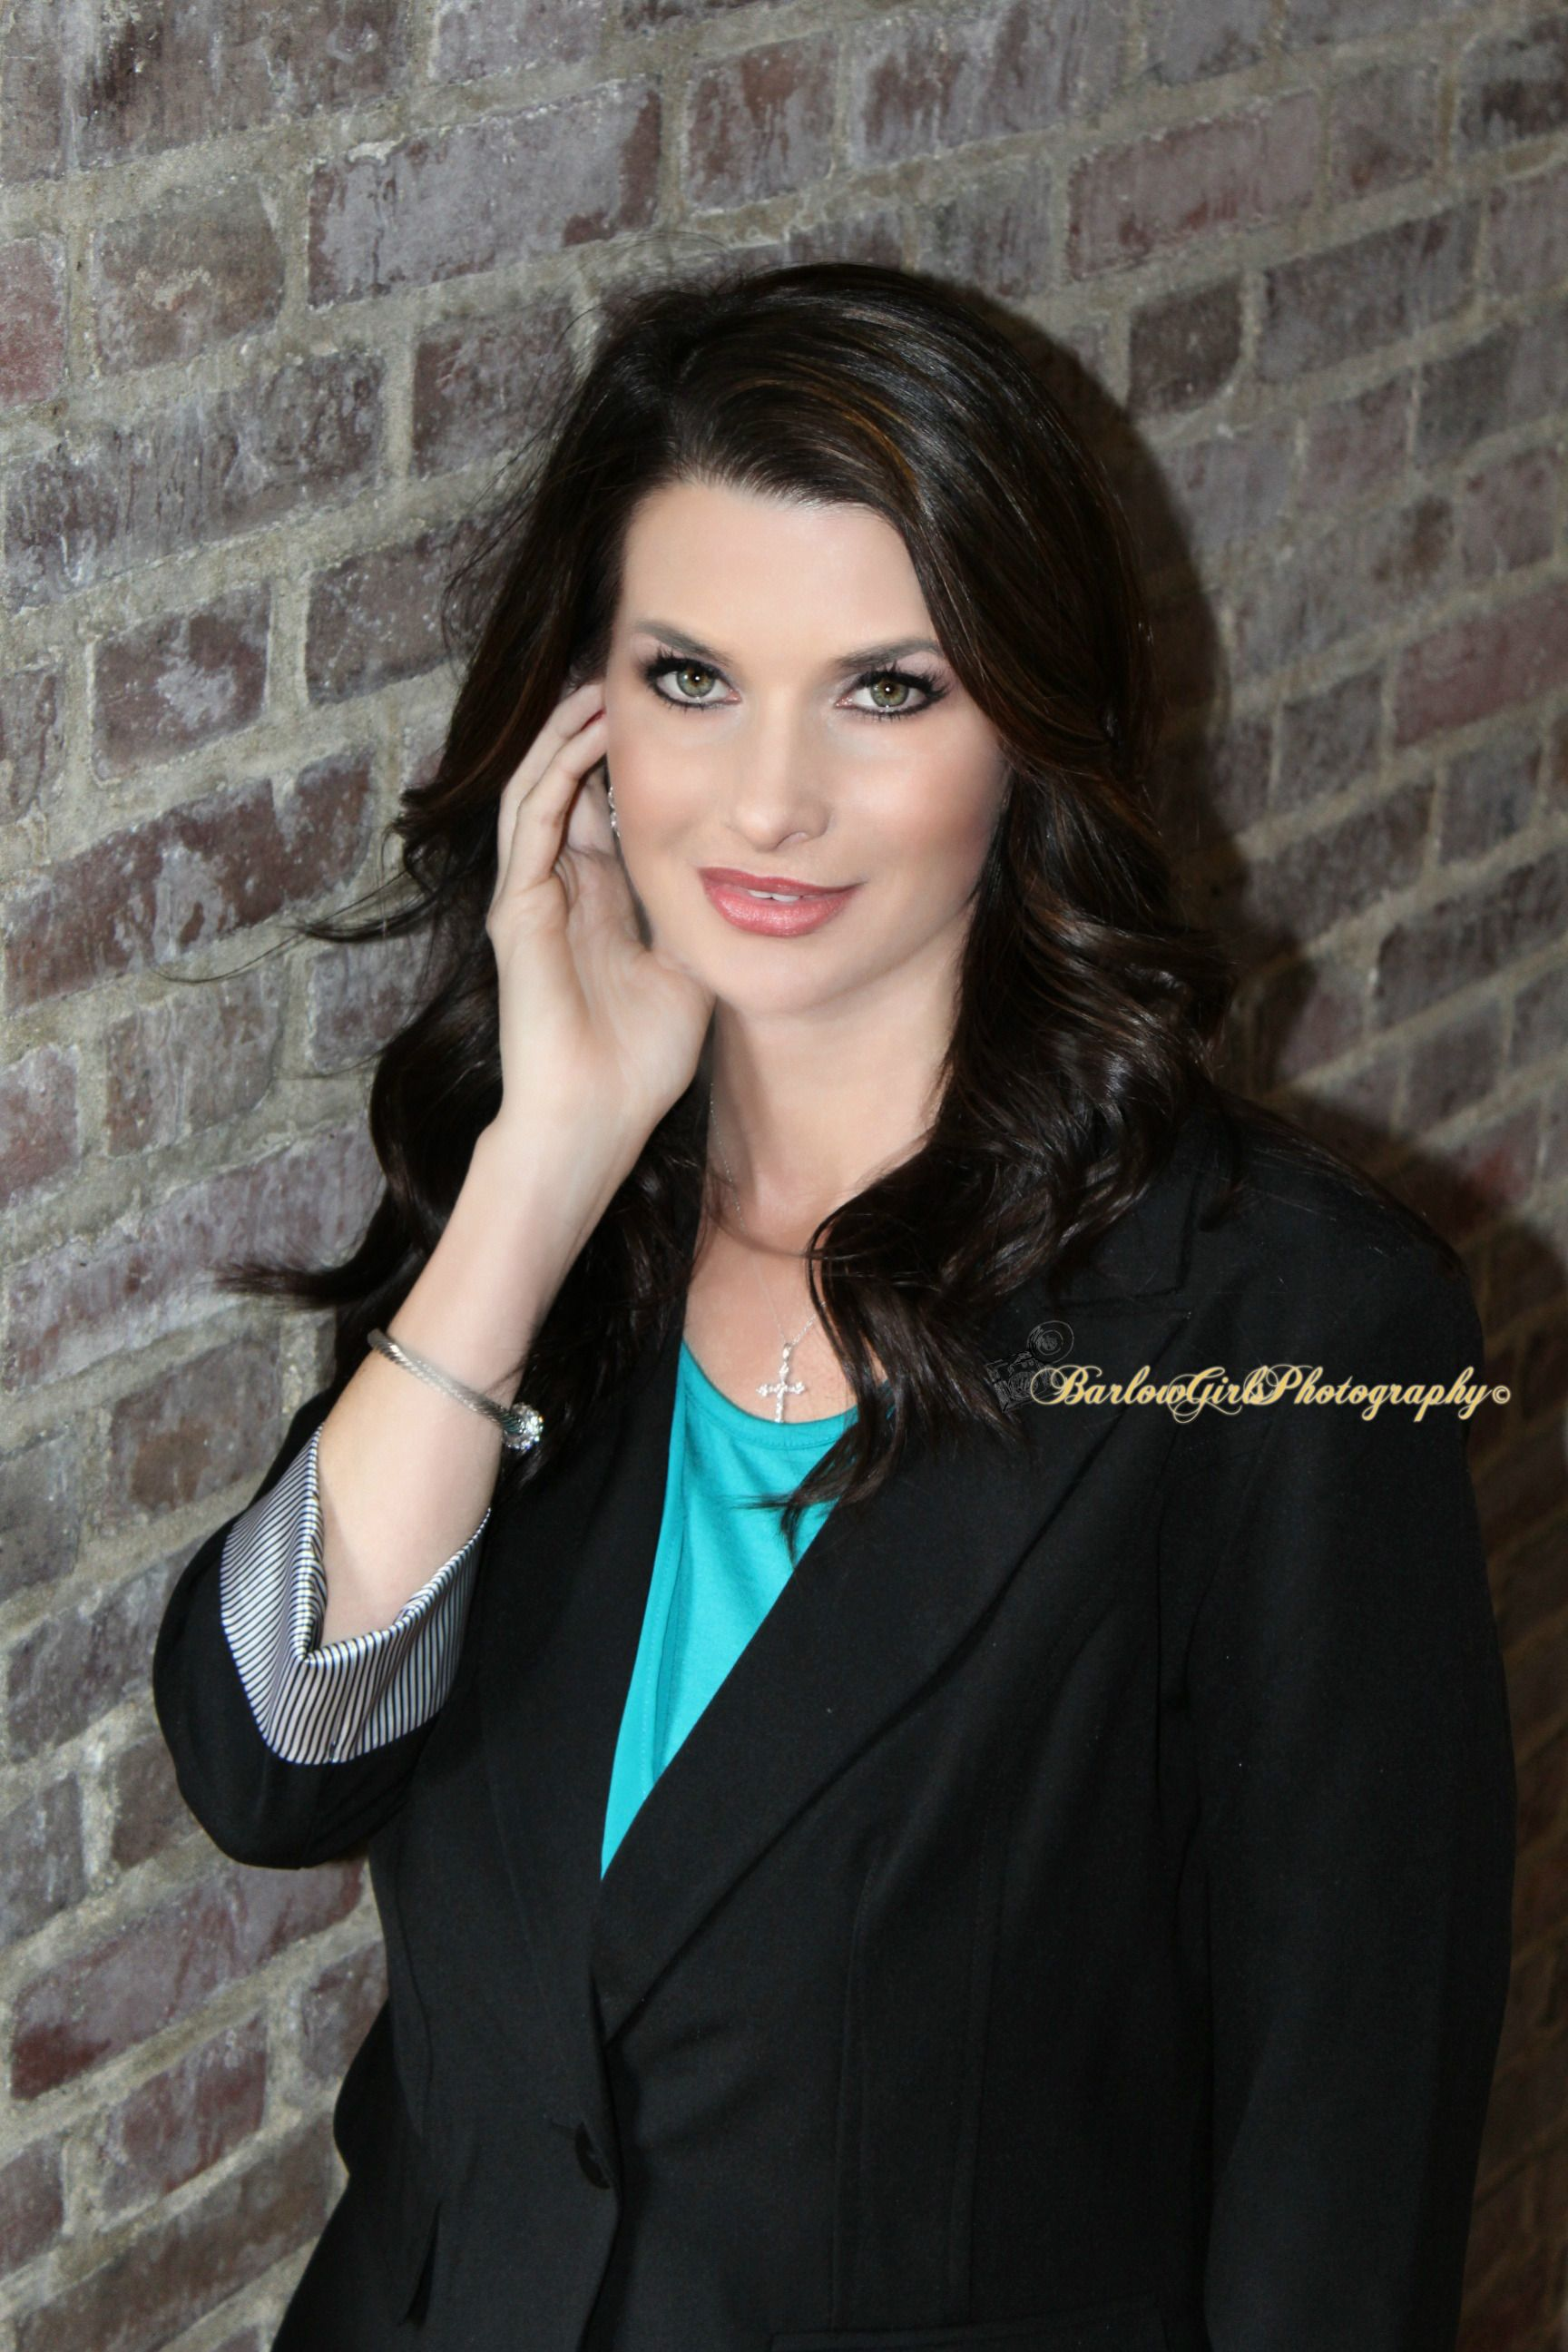 Barlow Girls Photography~ #Clarksville #Tennessee #fortcampbell #Kentucky #photographer #photography #poses #downtownclarksville #business #realtor #realestate #businesscards #apsu